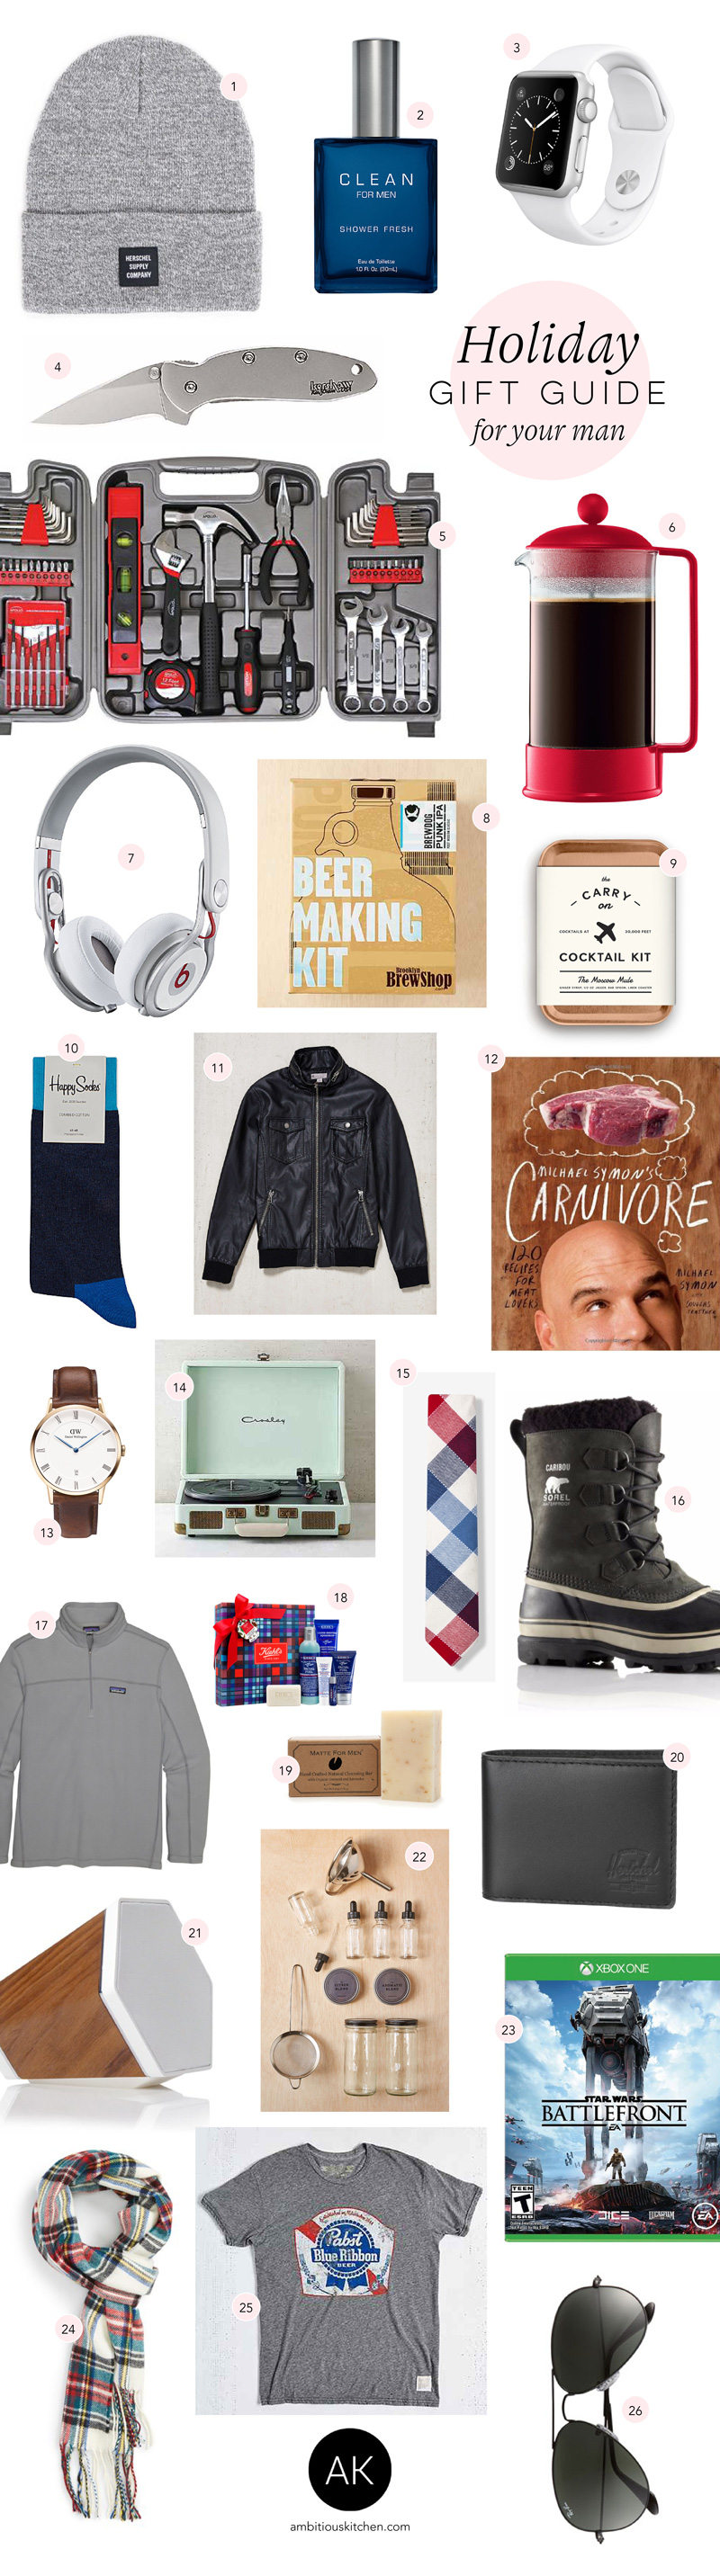 Ak gift guide 2015 for the man in your life ambitious for Personalized christmas gifts for men